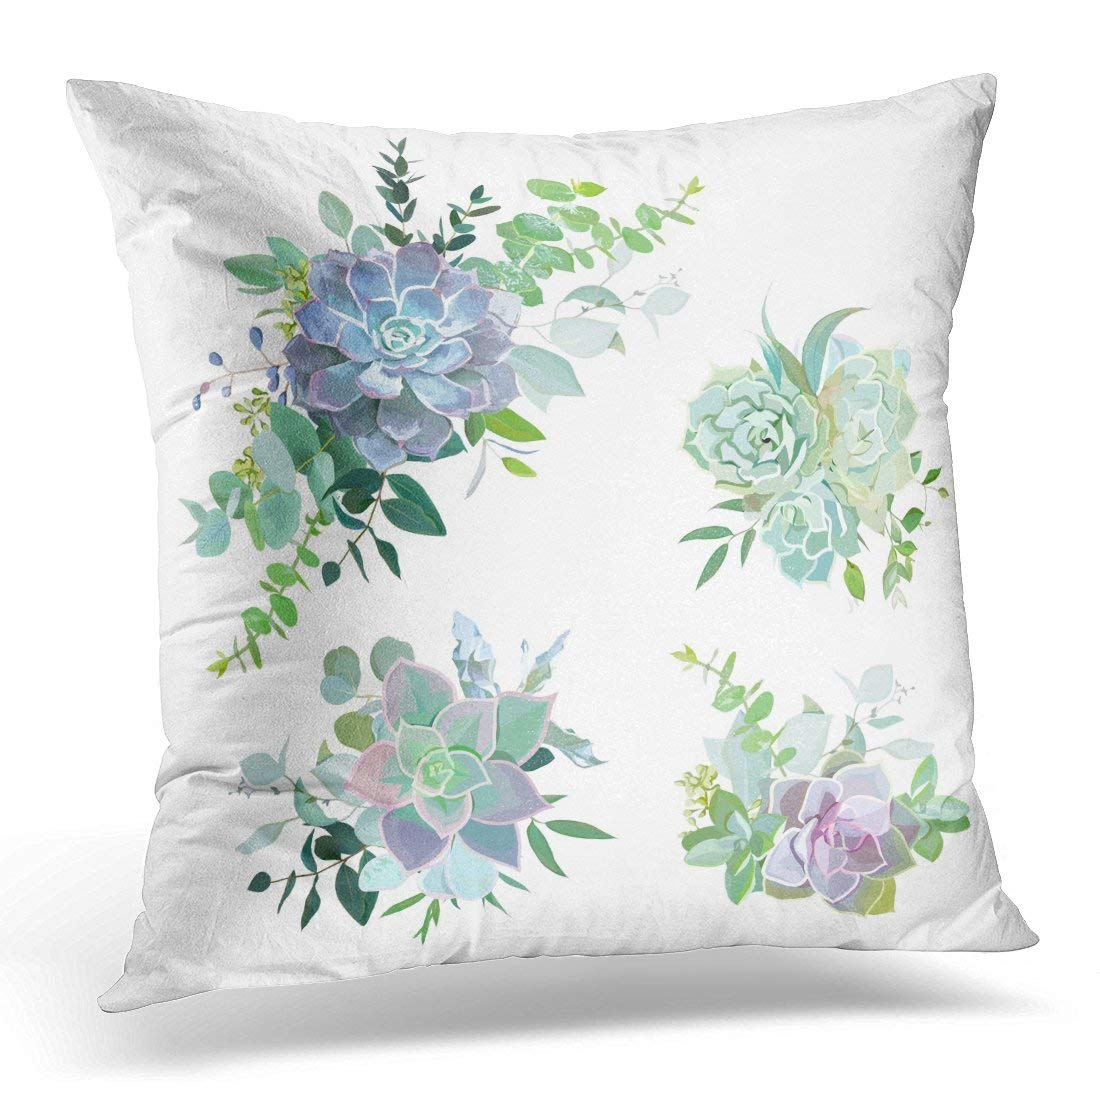 Arhome Green Colorful Succulent Bouquets Objects Eucalyptus Selection Echeveria Herbs Various Plants And Leaves Pillow Case Pillow Cover 18x18 Inch Walmart Com Walmart Com